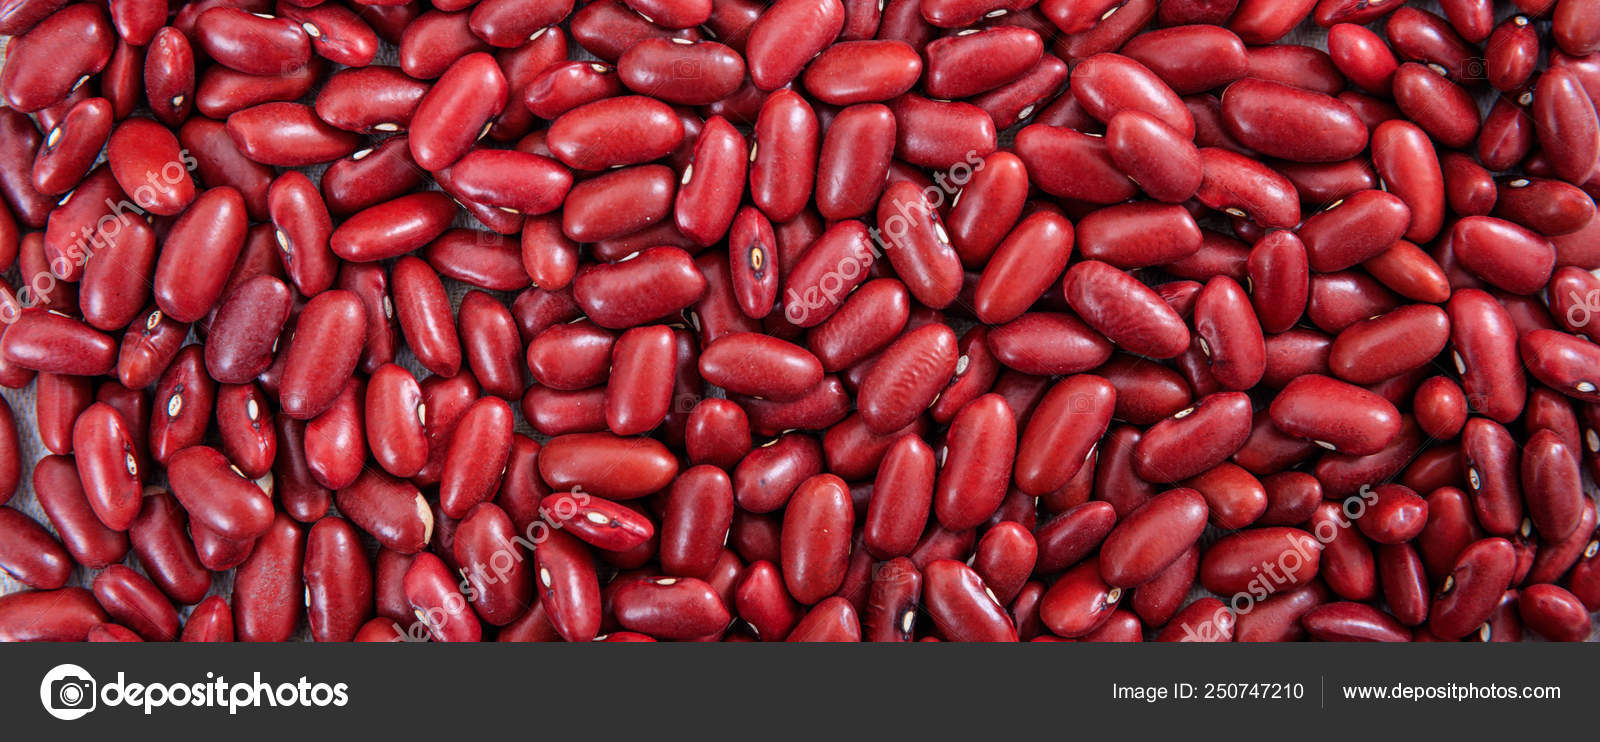 Red Dry Kidney Beans Uncooked Full Background Banner Top View Stock Photo C Gioiak2 250747210